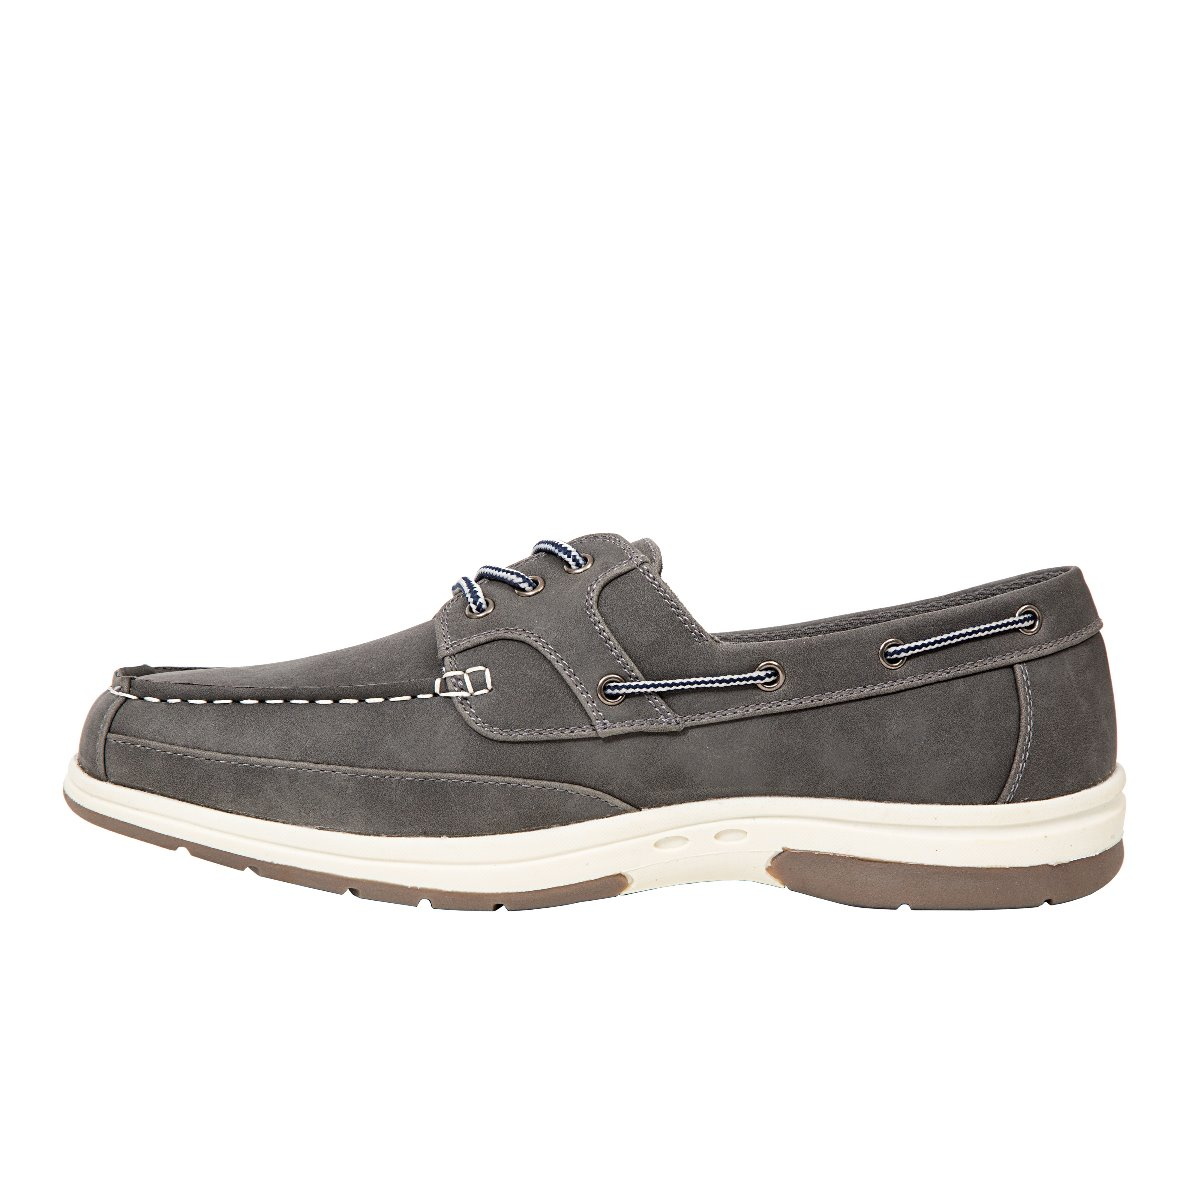 Dark Brown Boat Shoes